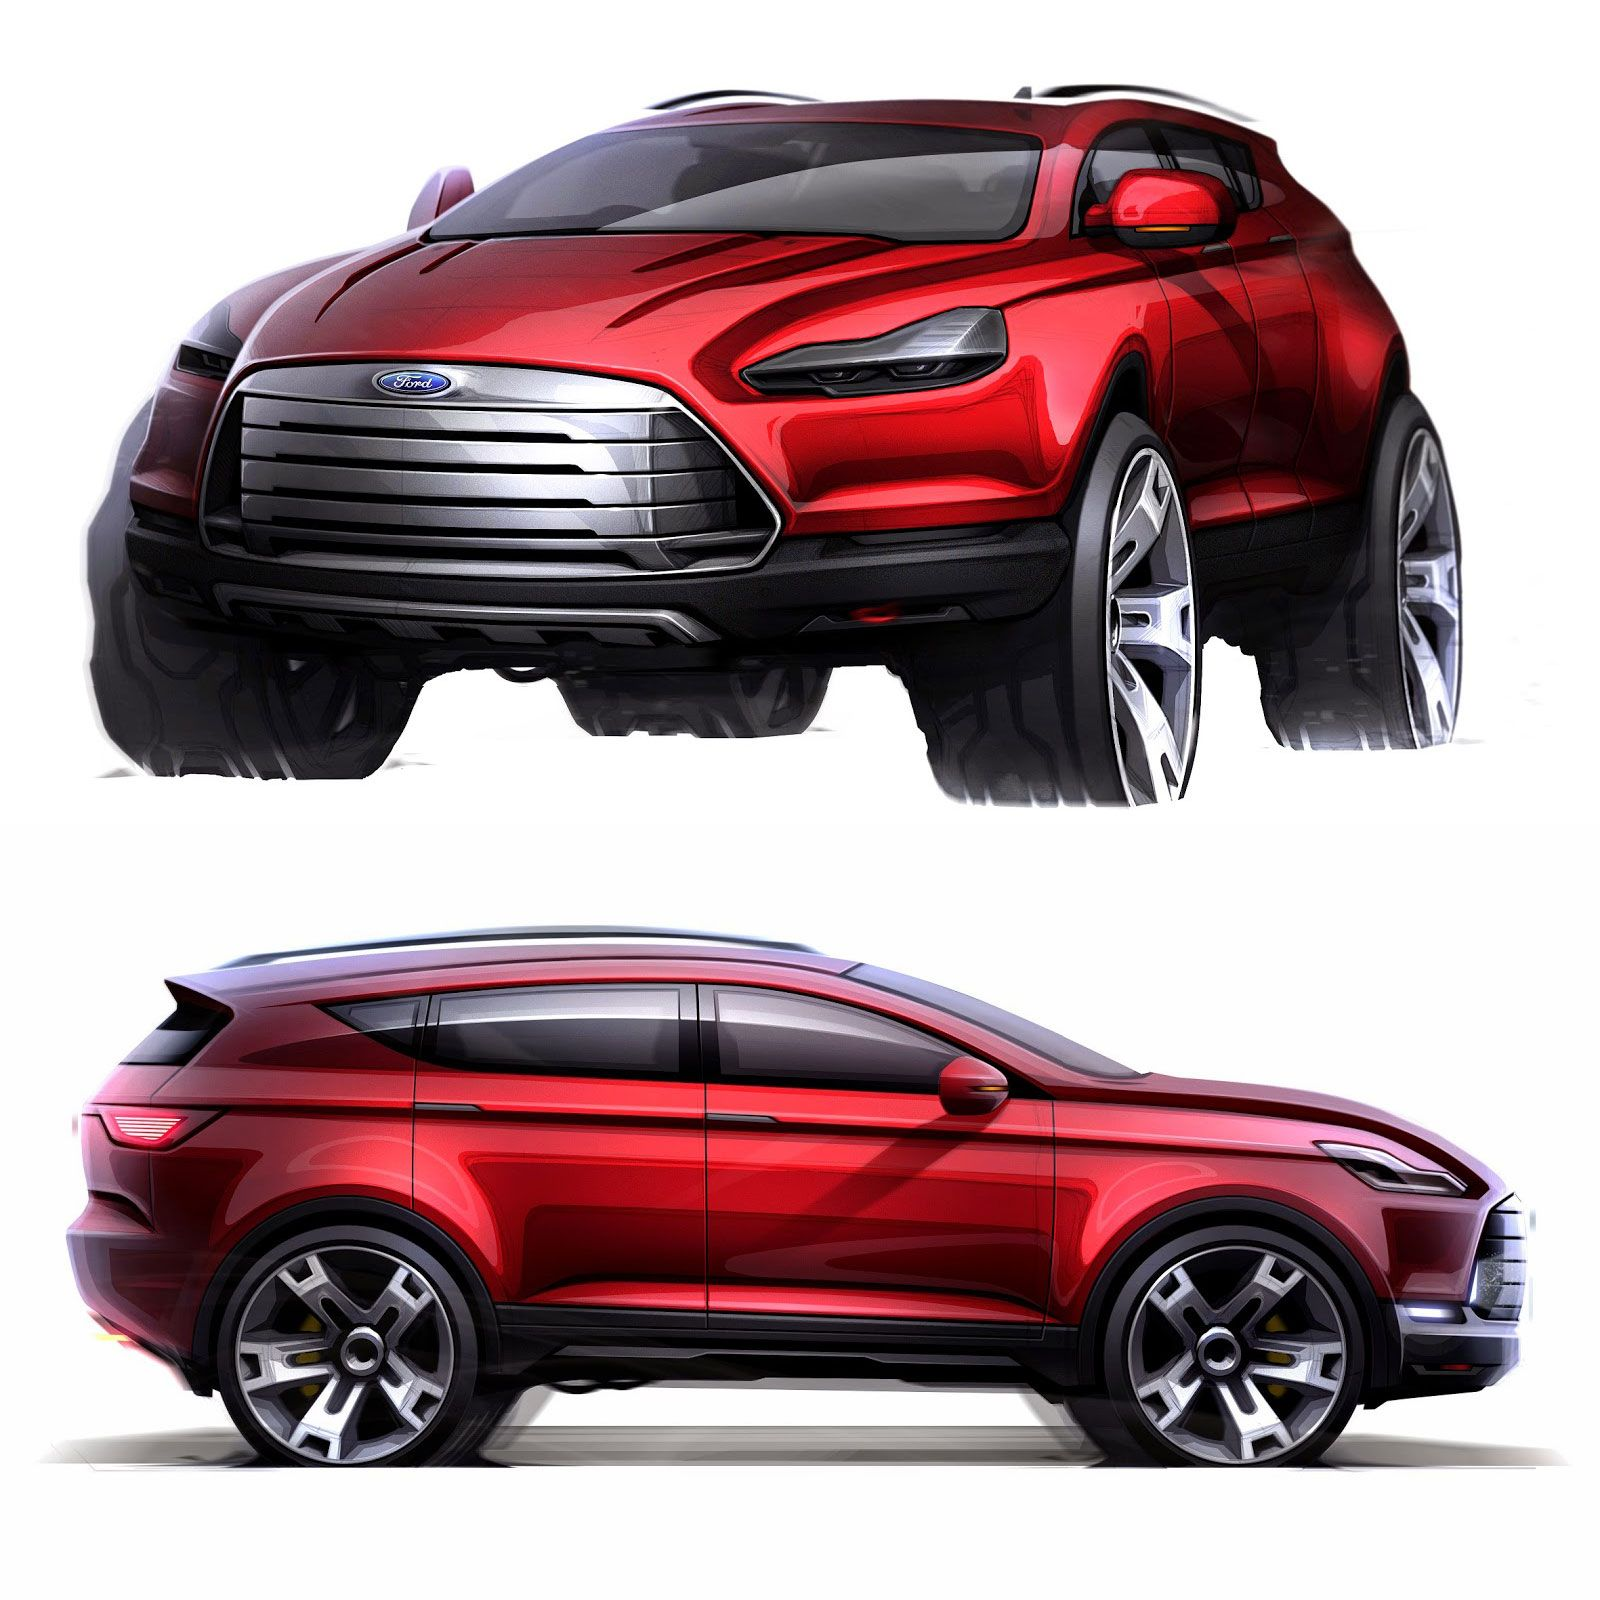 Ford Kuga Concept Design Sketch By Denis Zhuravlev Car Design